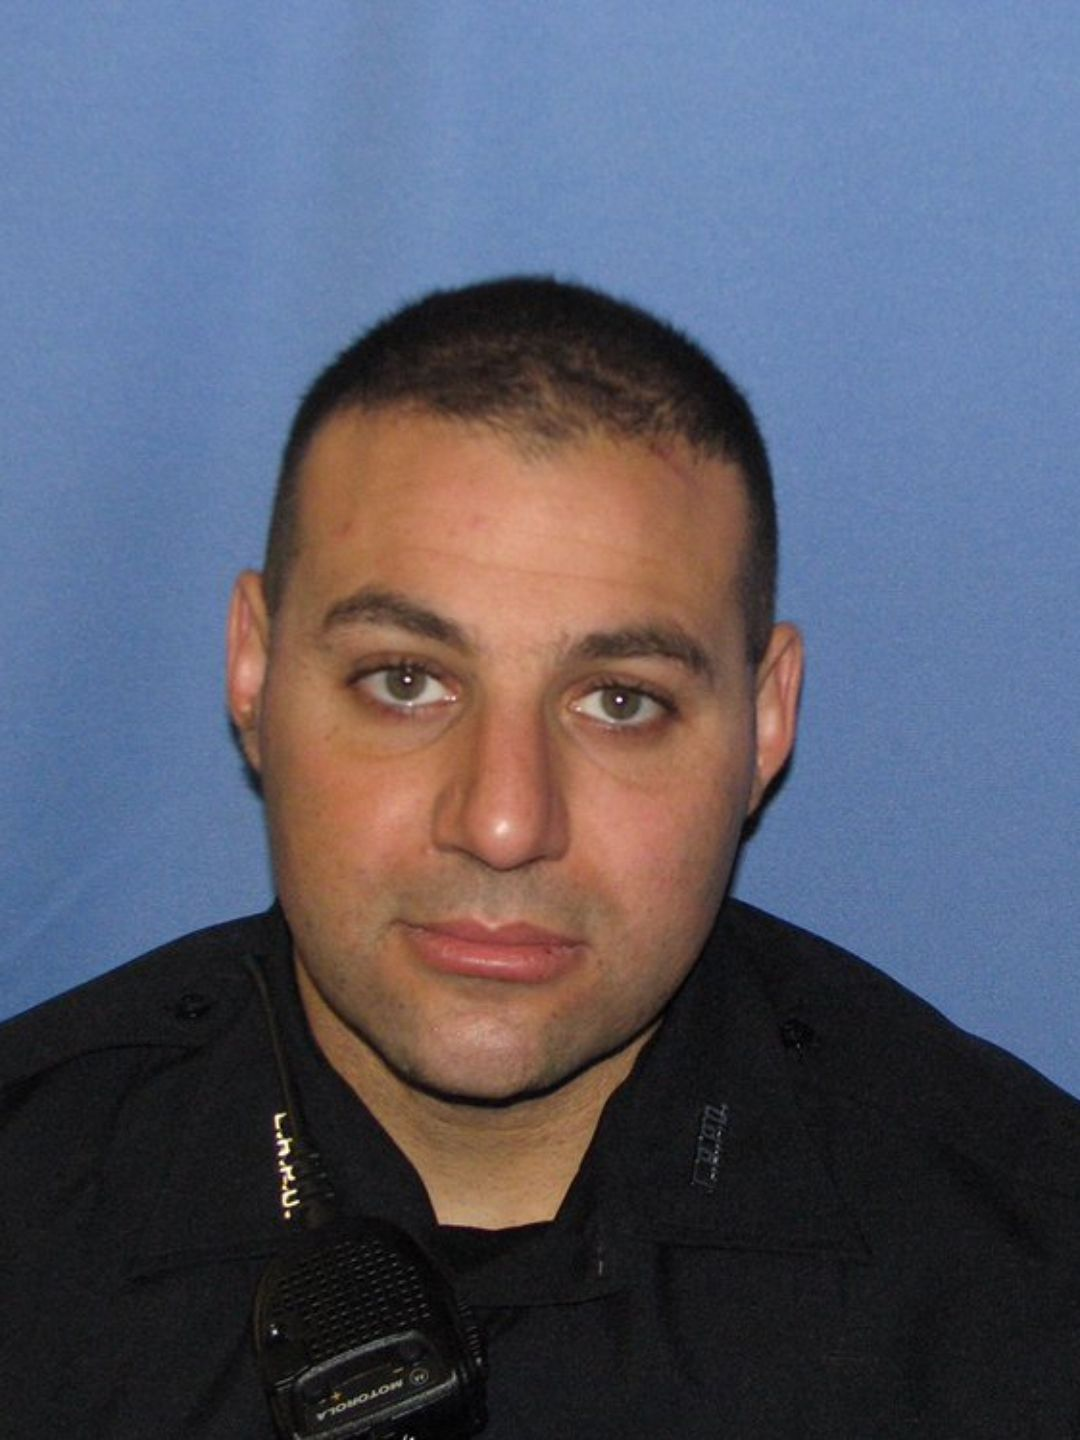 Officer Shawn Bakr Courtesy LRPD